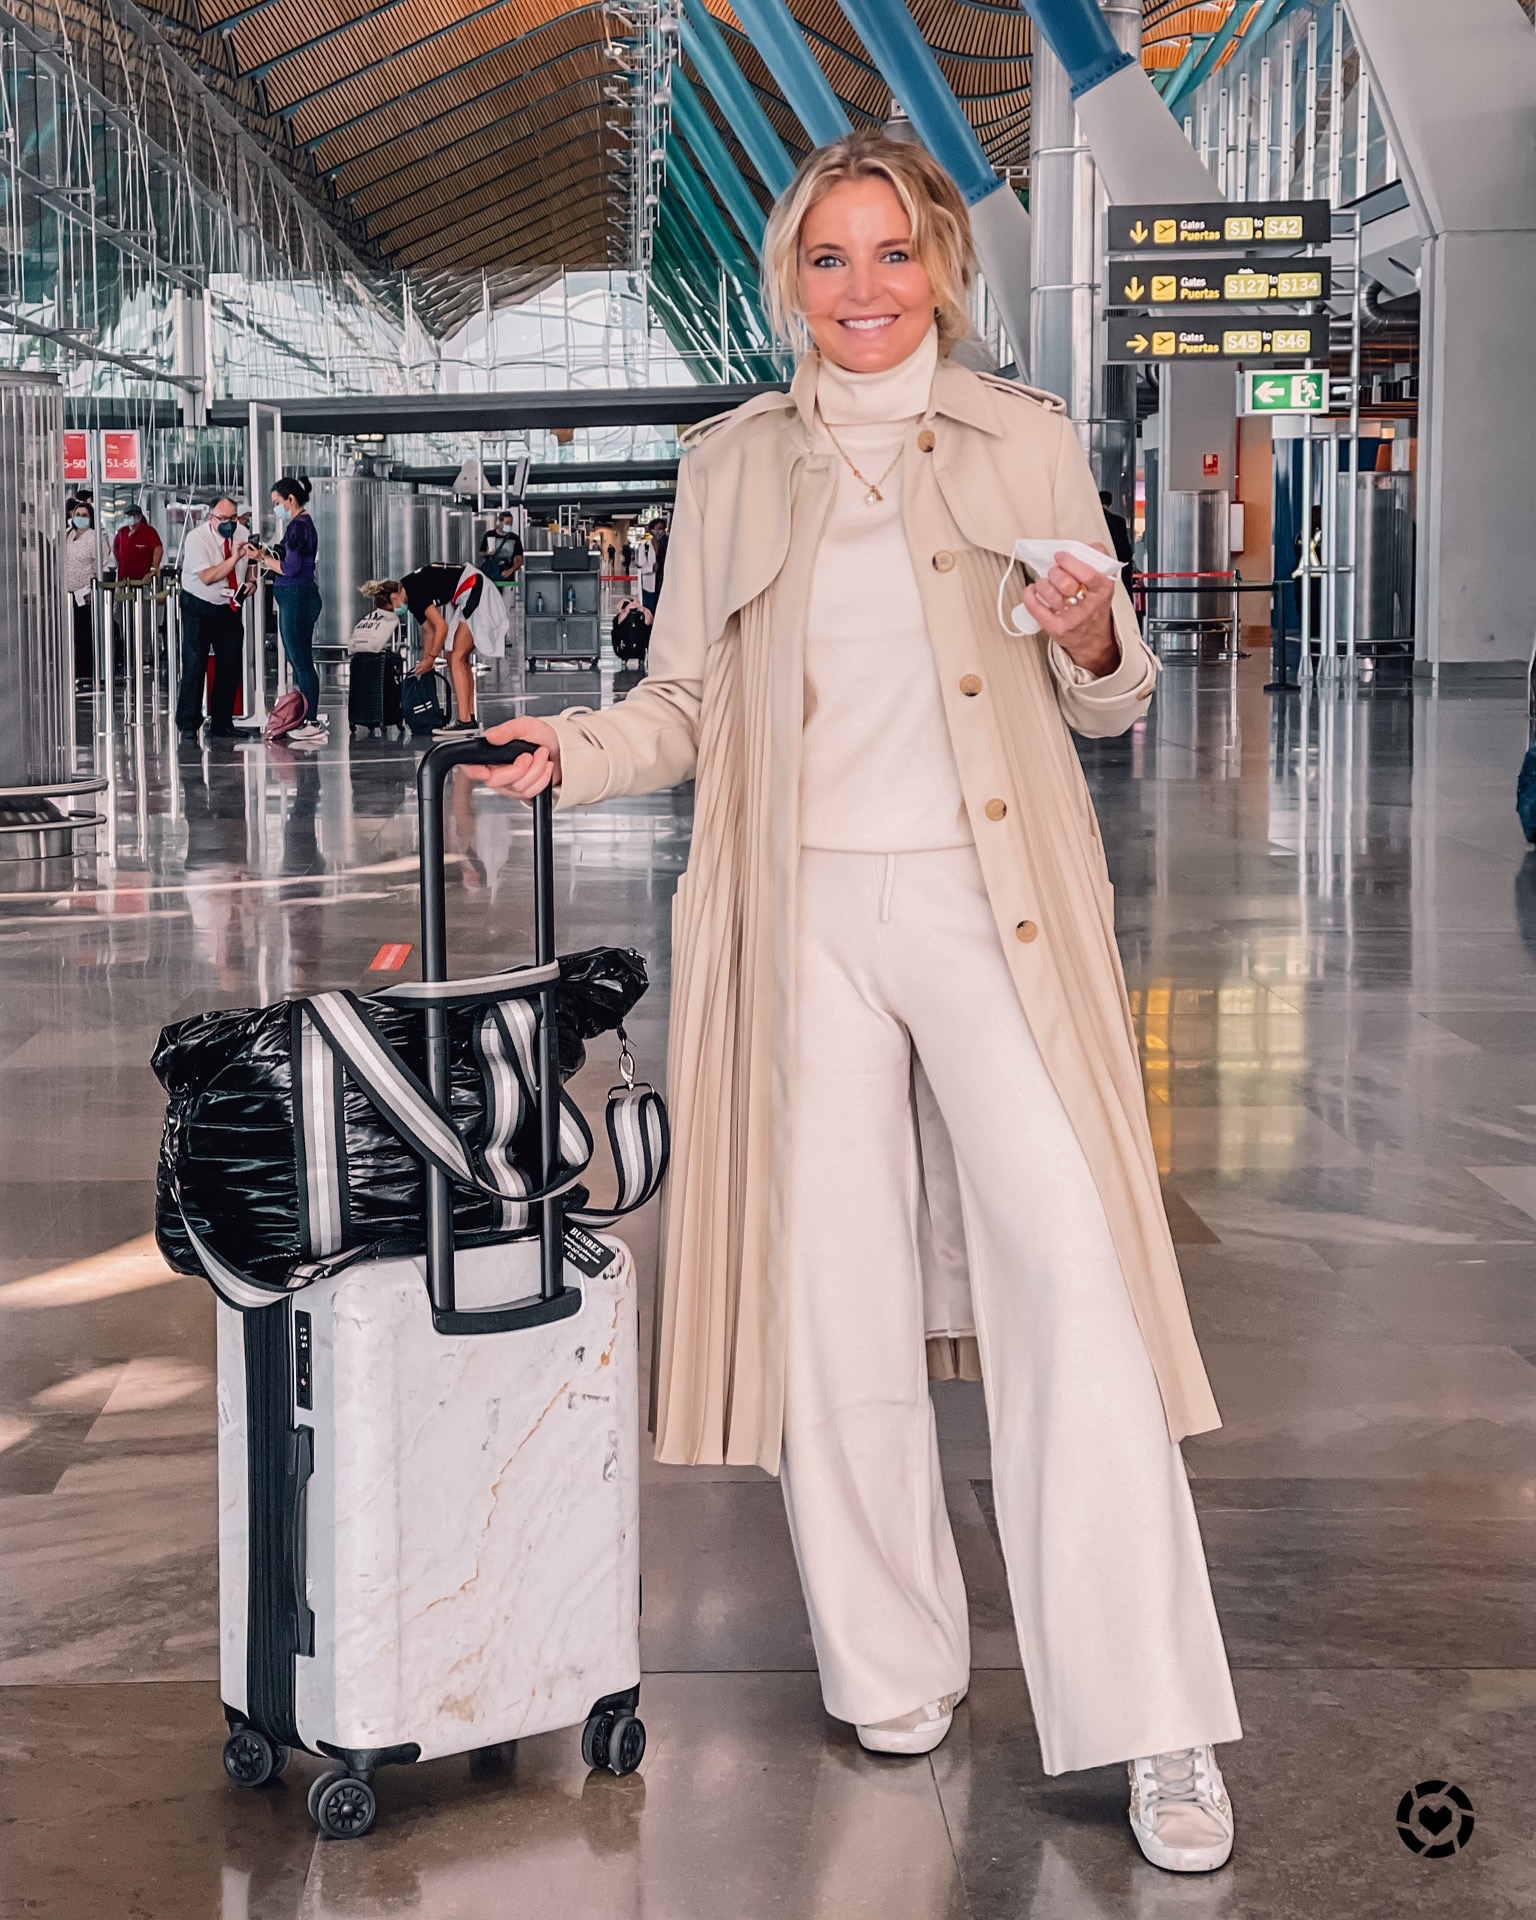 where to travel from spain, travel from spain, travel from madrid, erin bsubee, where to travel, weekend trips from spain, weekend trips from madrid, london, england, ivory mango set, loungewear set, pleated sandro trench, calpak suitcase, think rolyn tote